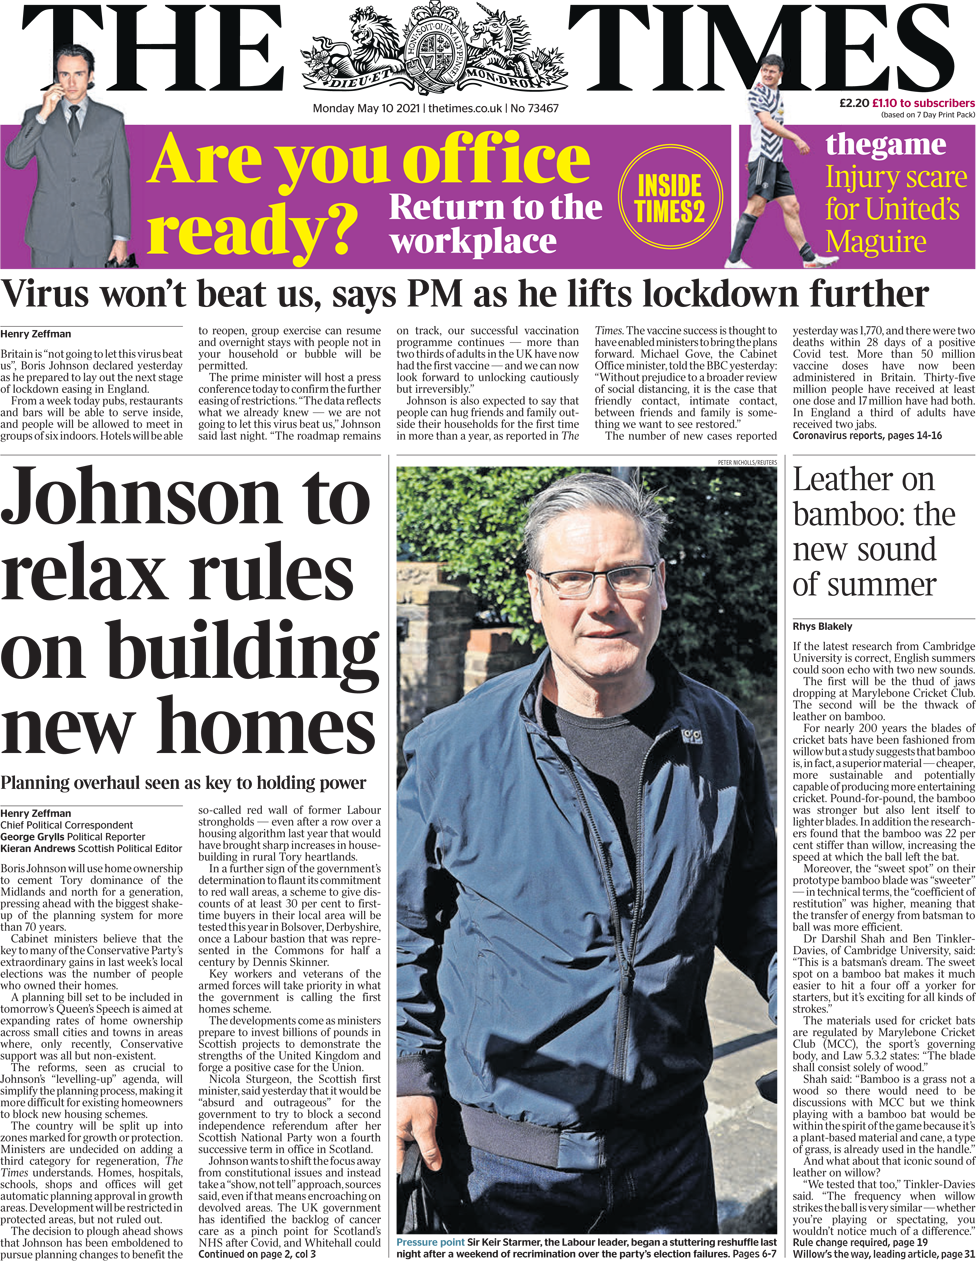 The Times front page 10 May 2021